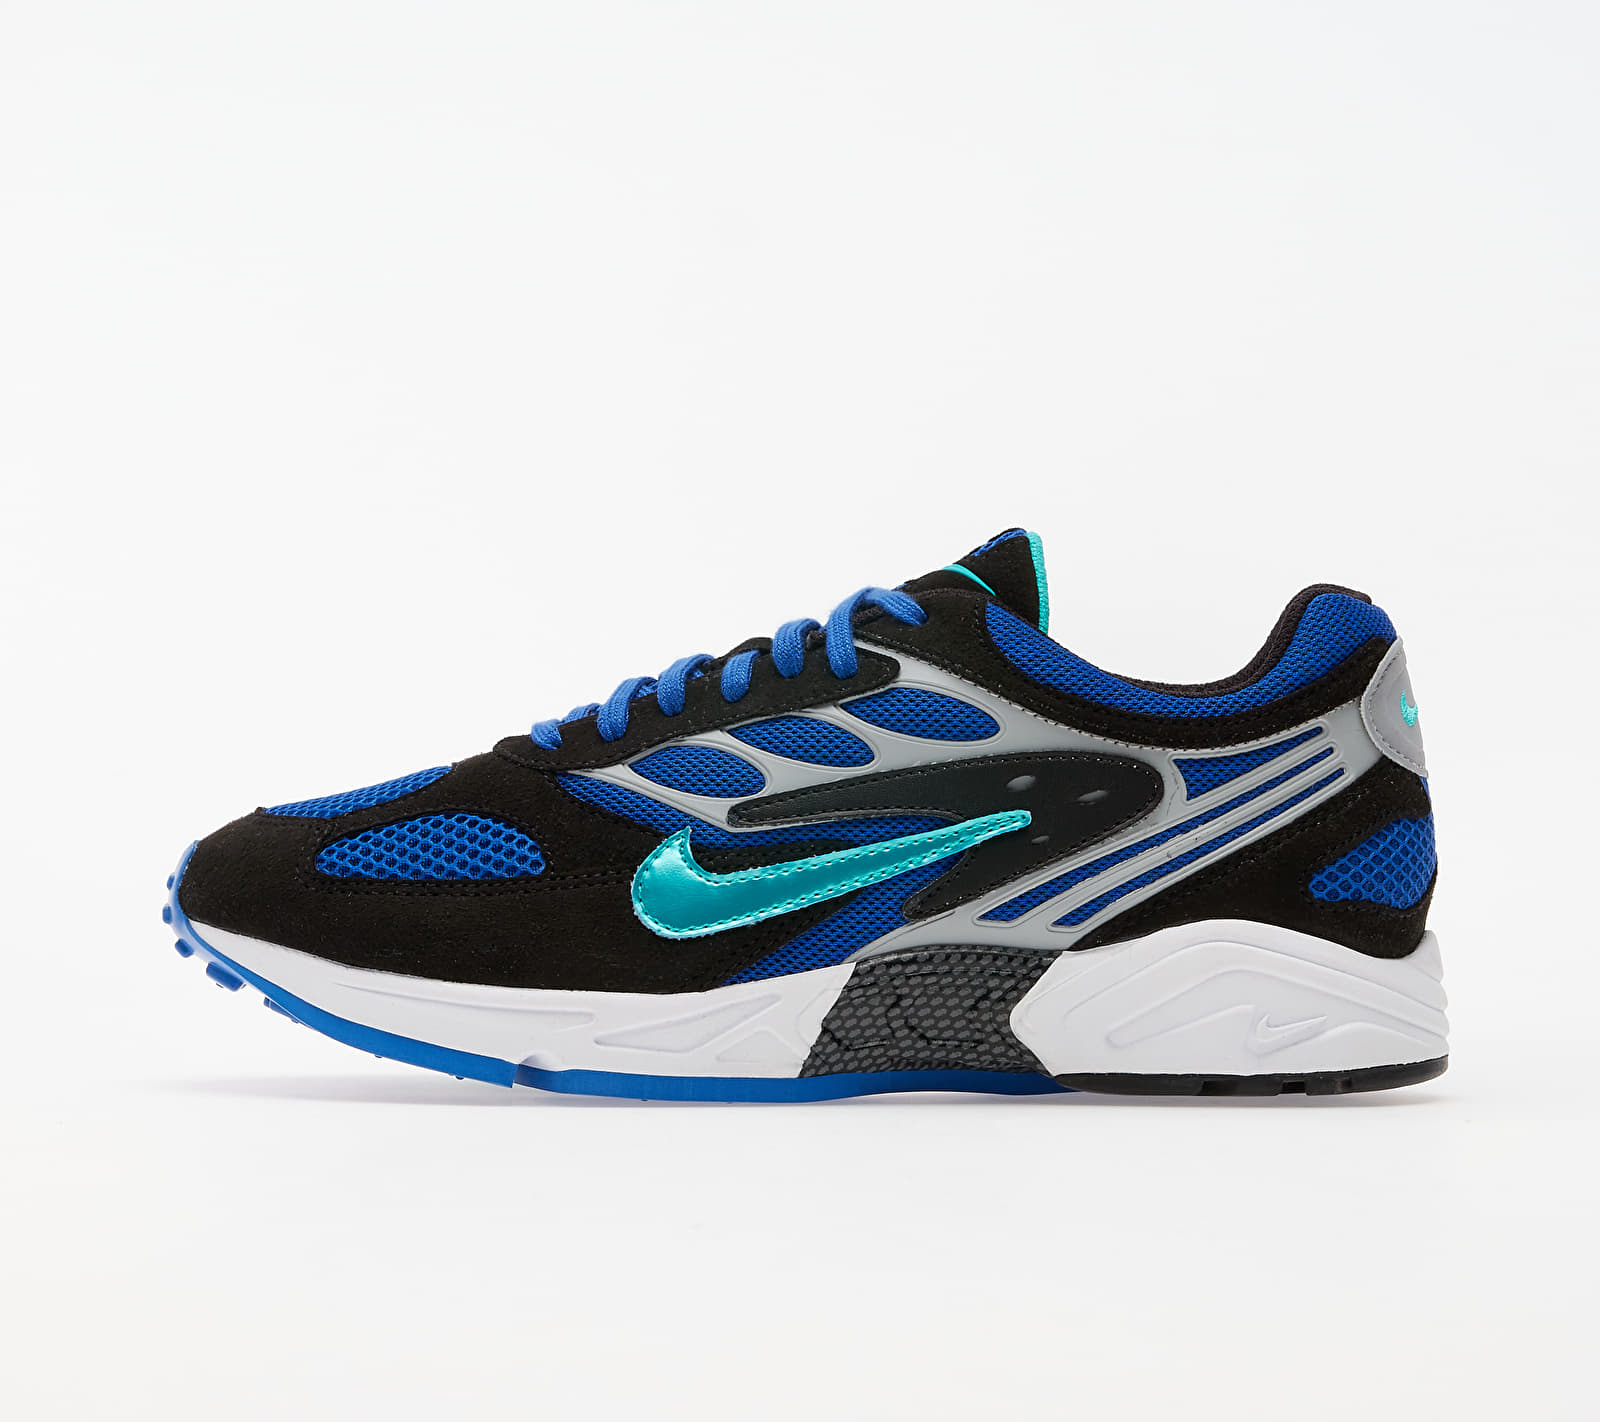 Nike Air Ghost Racer Black/ Hyper Jade-Racer Blue-Wolf Grey EUR 45